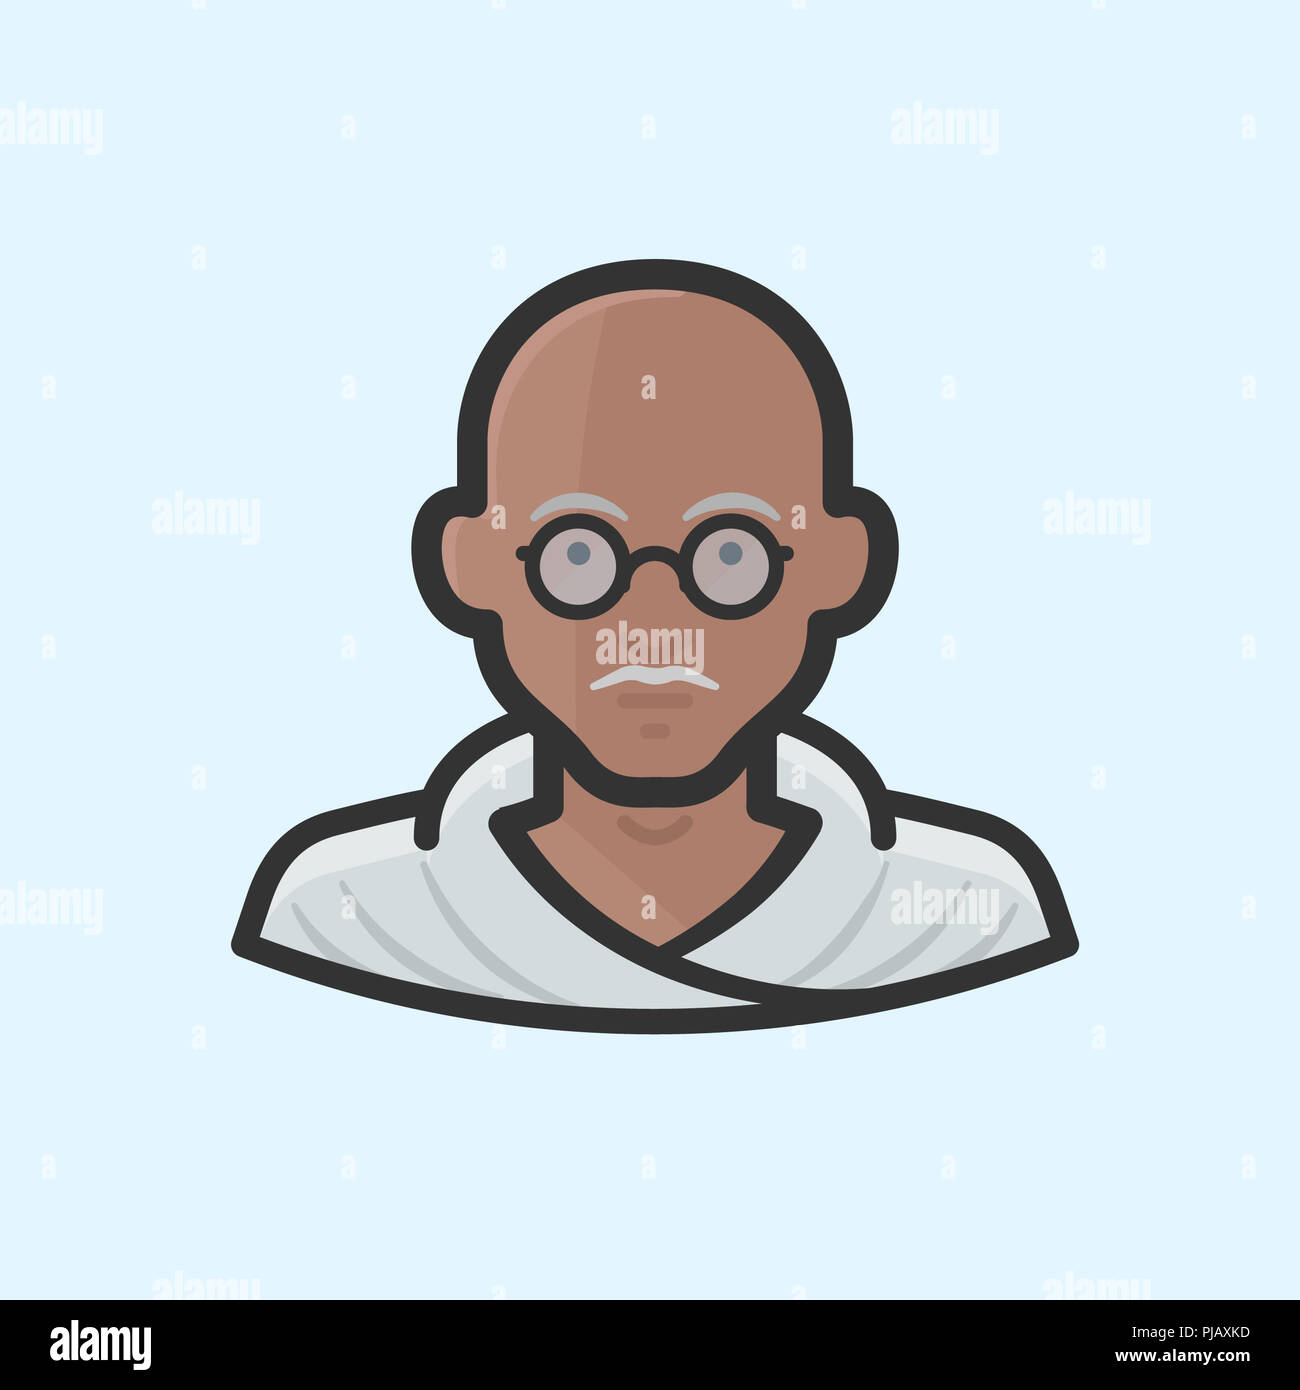 Mahatma Gandhi Cartoon Stock Photos & Mahatma Gandhi Cartoon